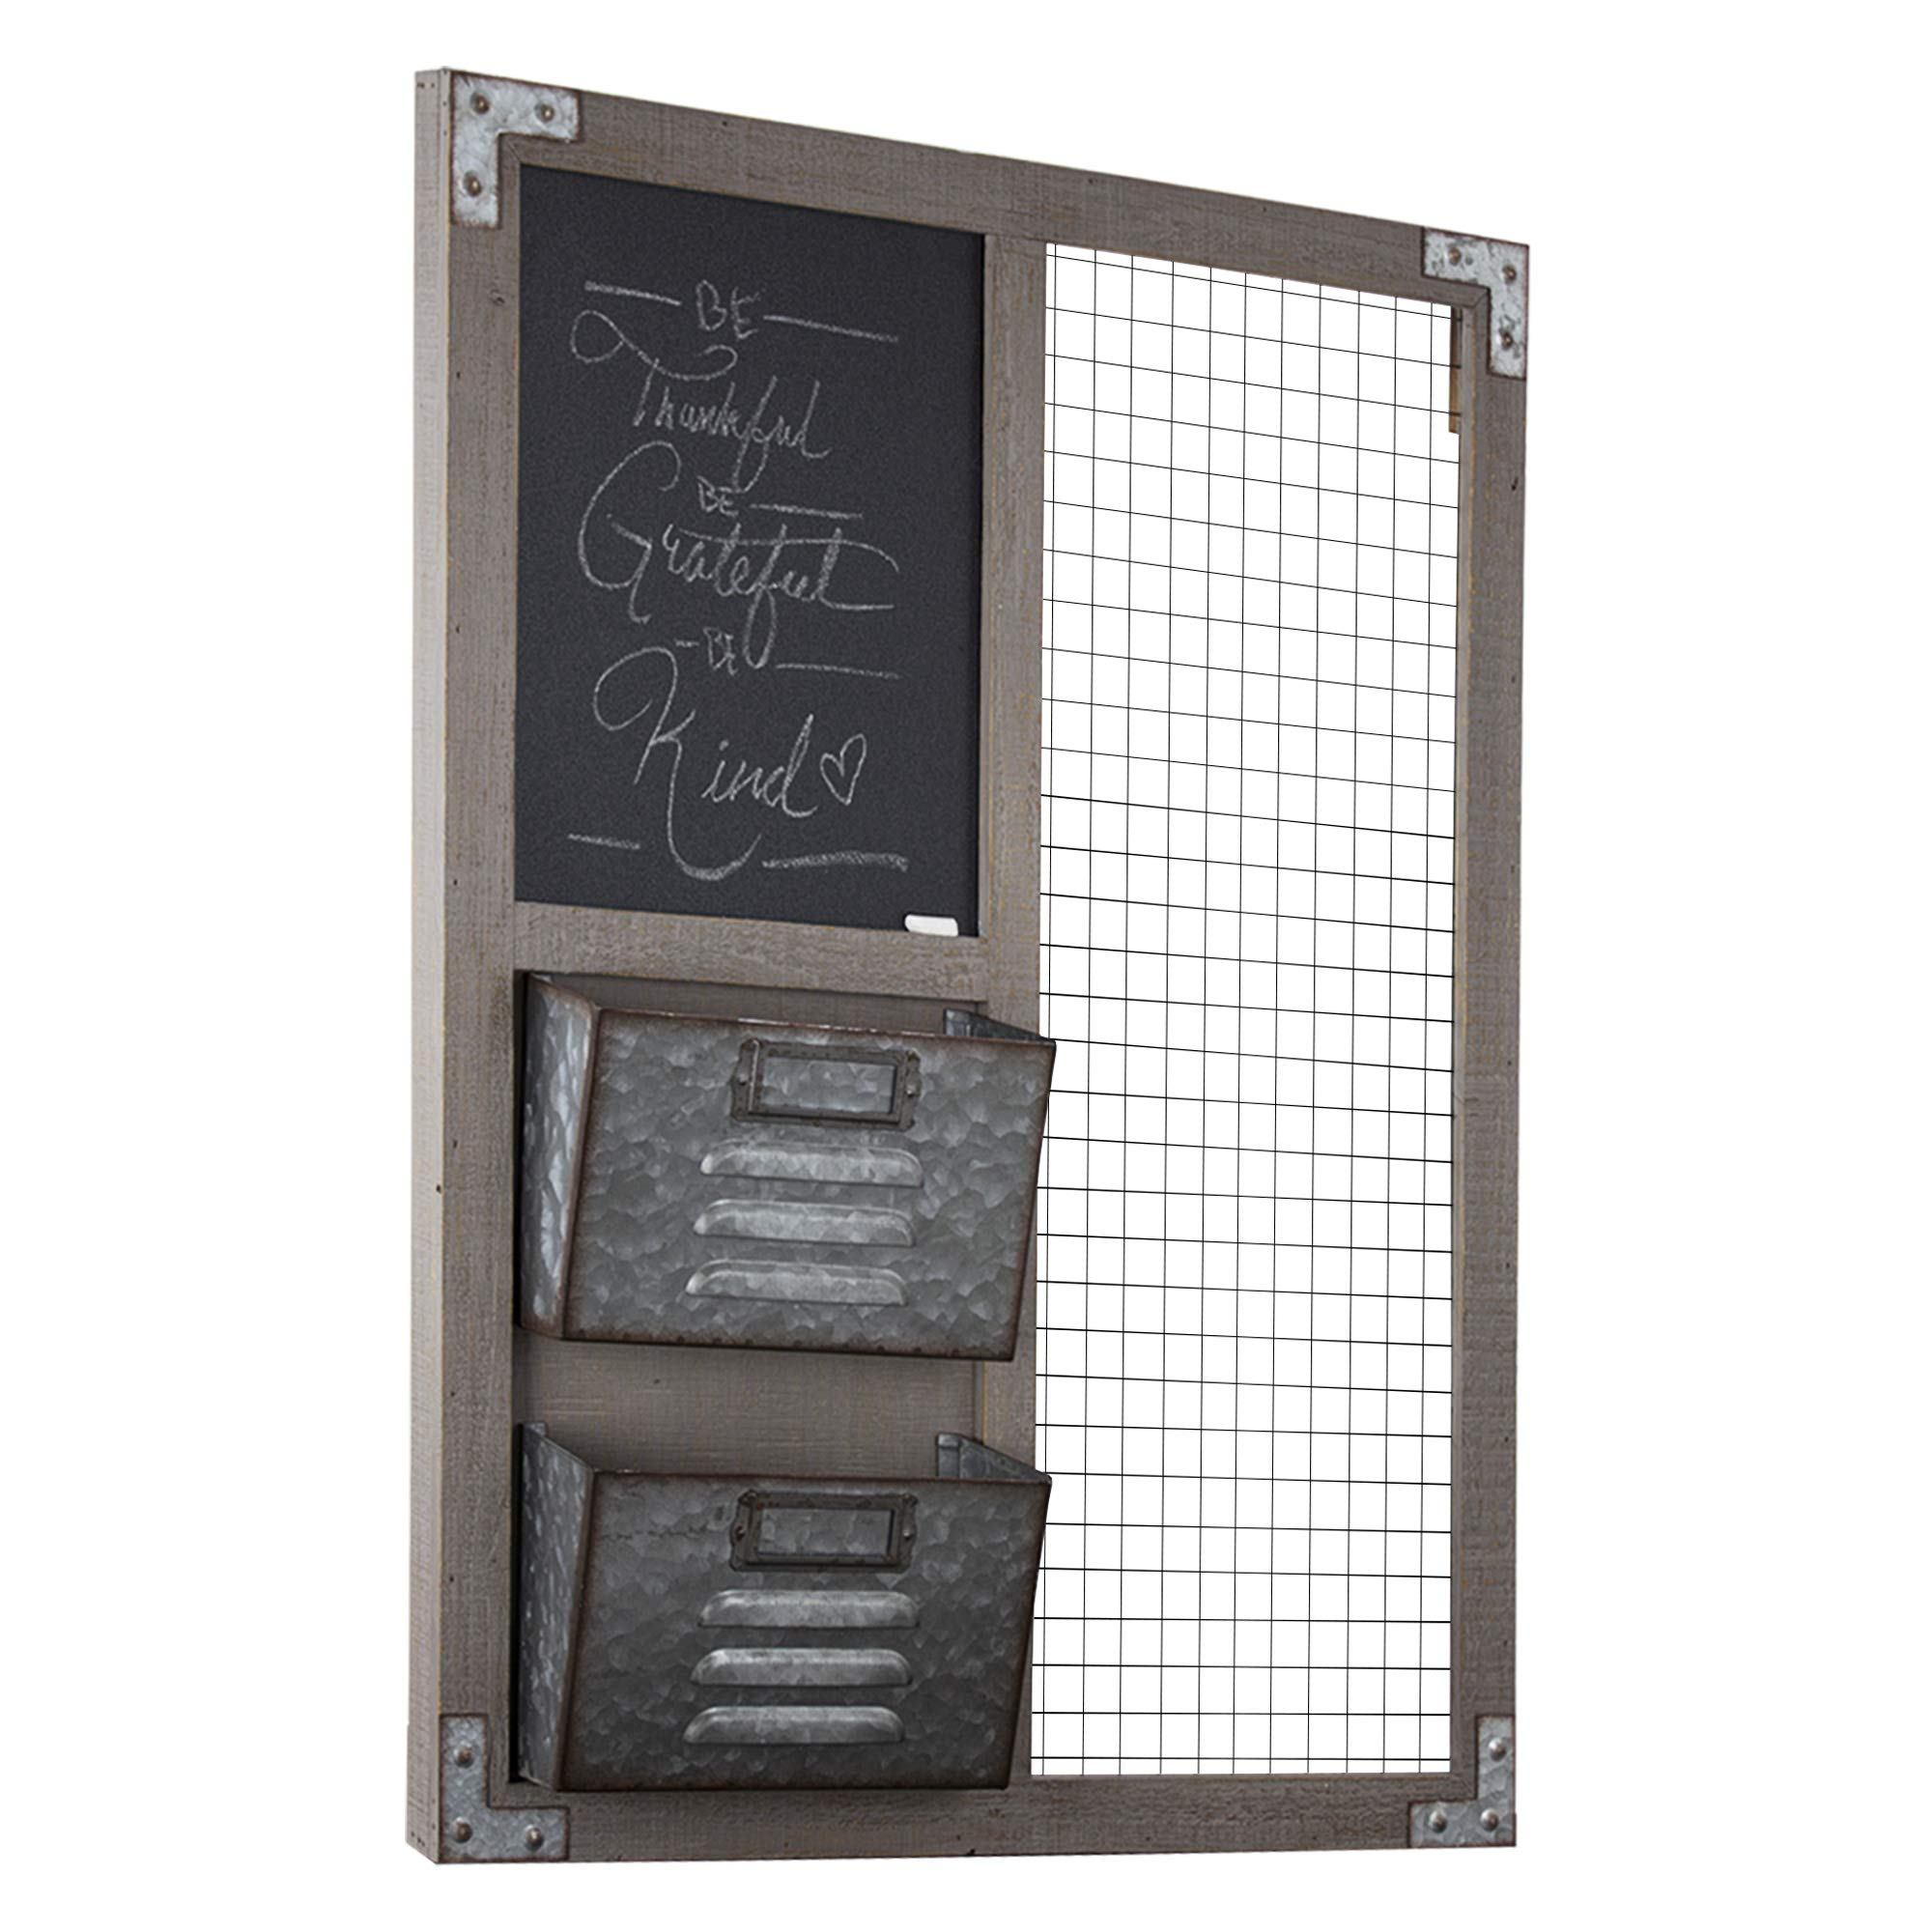 American Art Décor Wood and Metal Hanging Wall Organizer with Chalkboard and Storage Bins